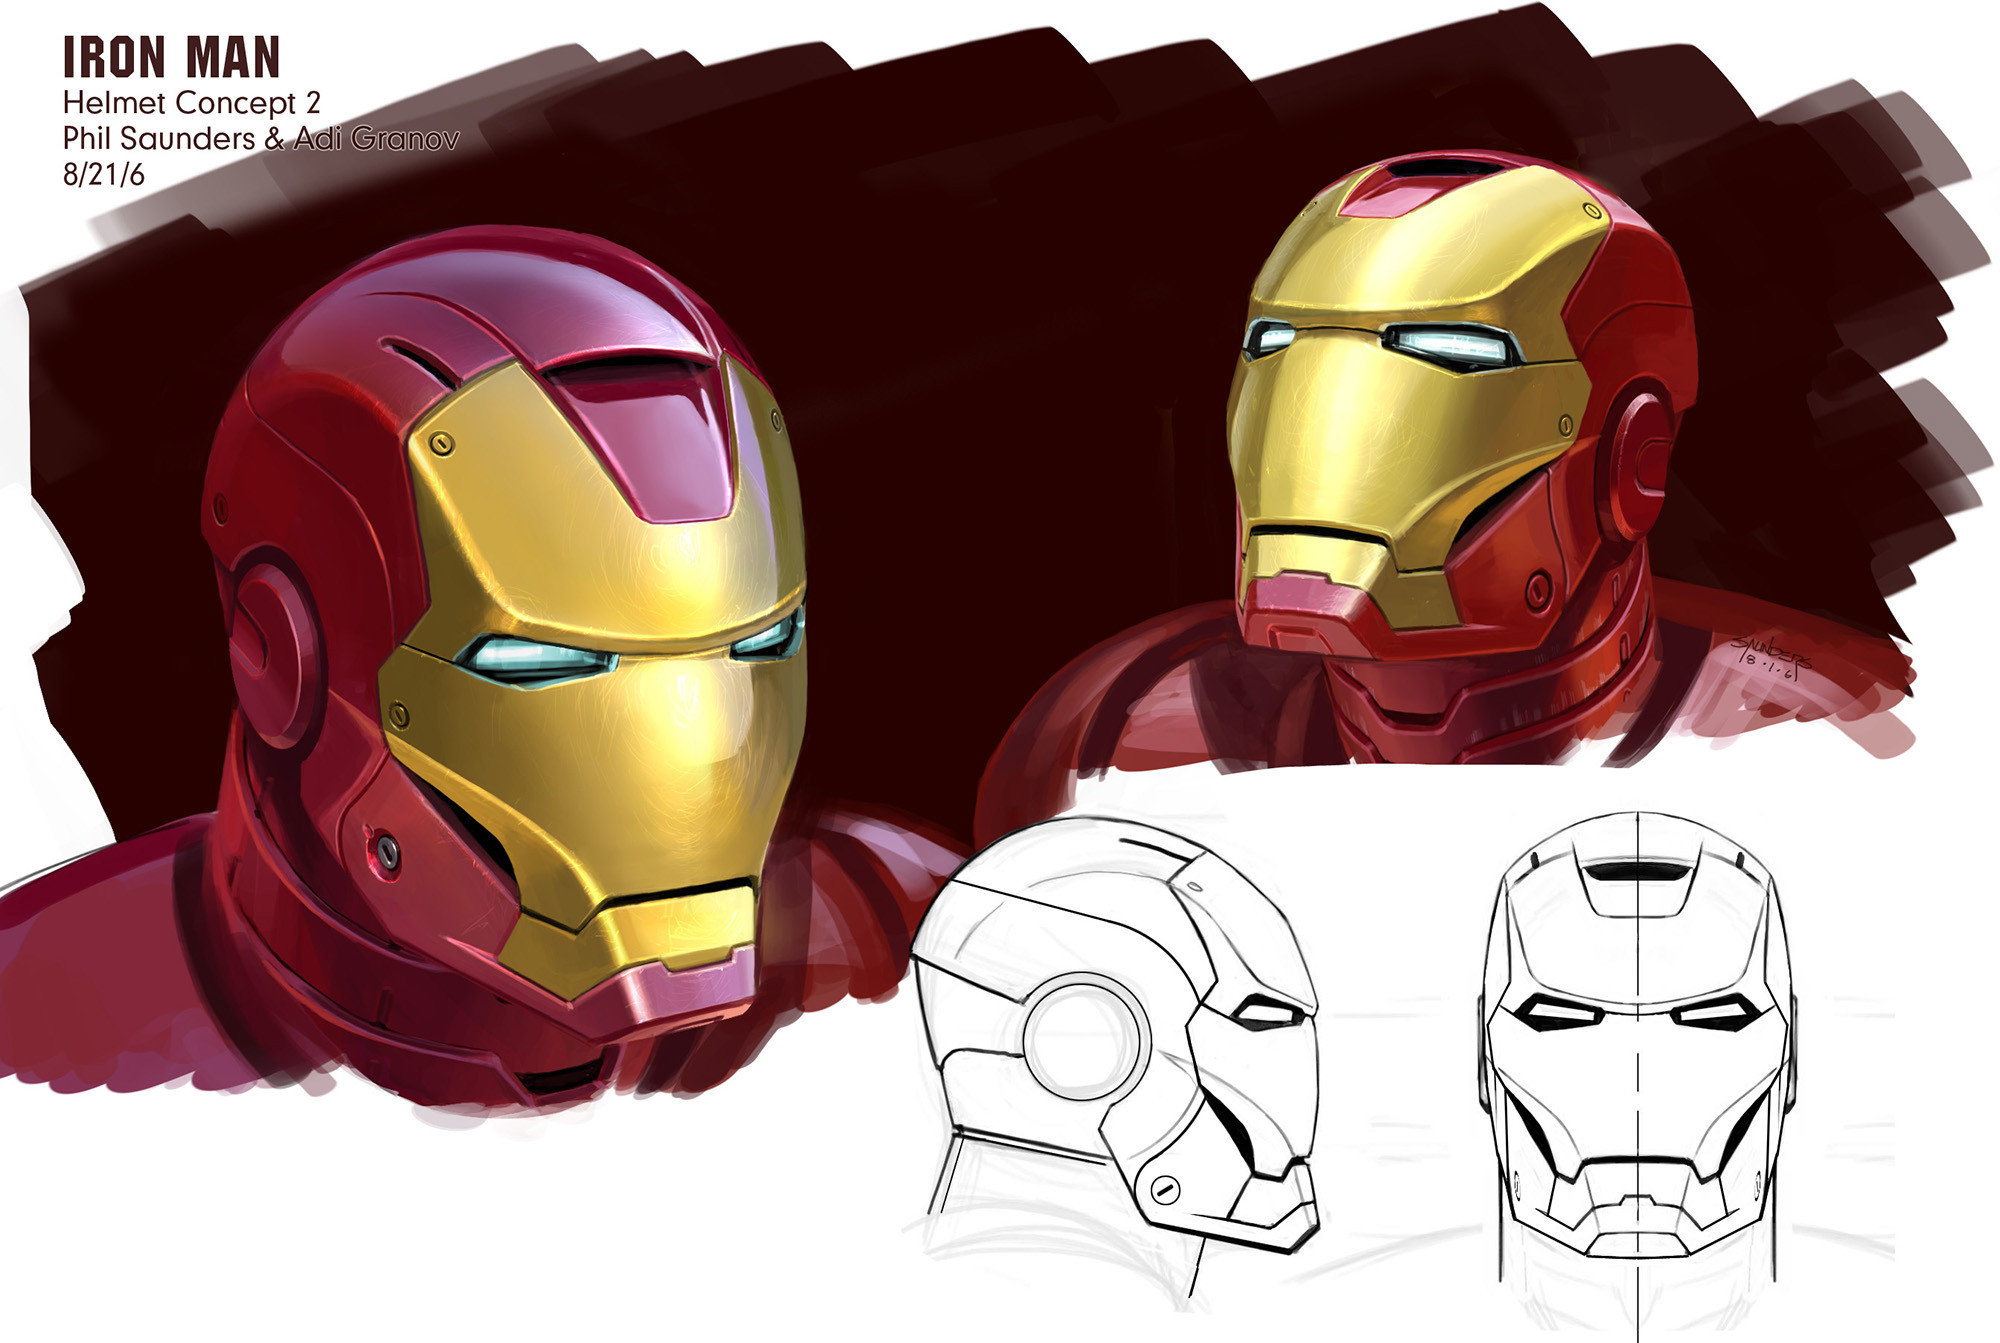 Final design for the helmet incorporating Adi's pass on the design and my own further refinements.